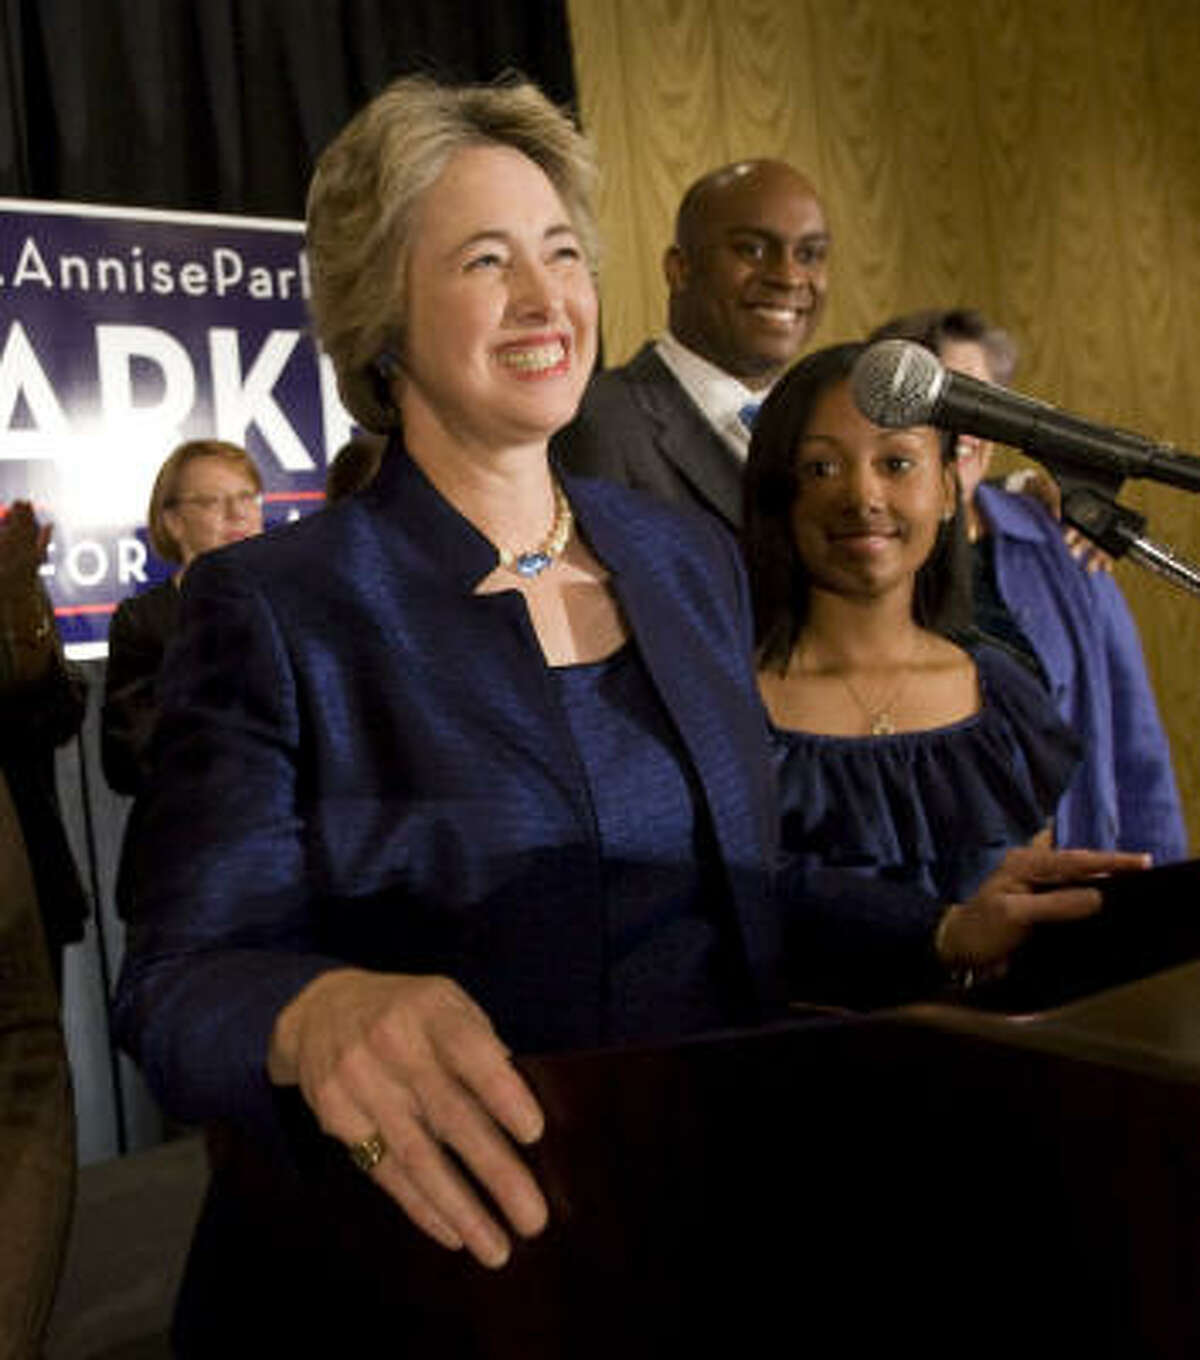 Data show mayoral candidate Annise Parker must get out her base and try to woo conservatives.